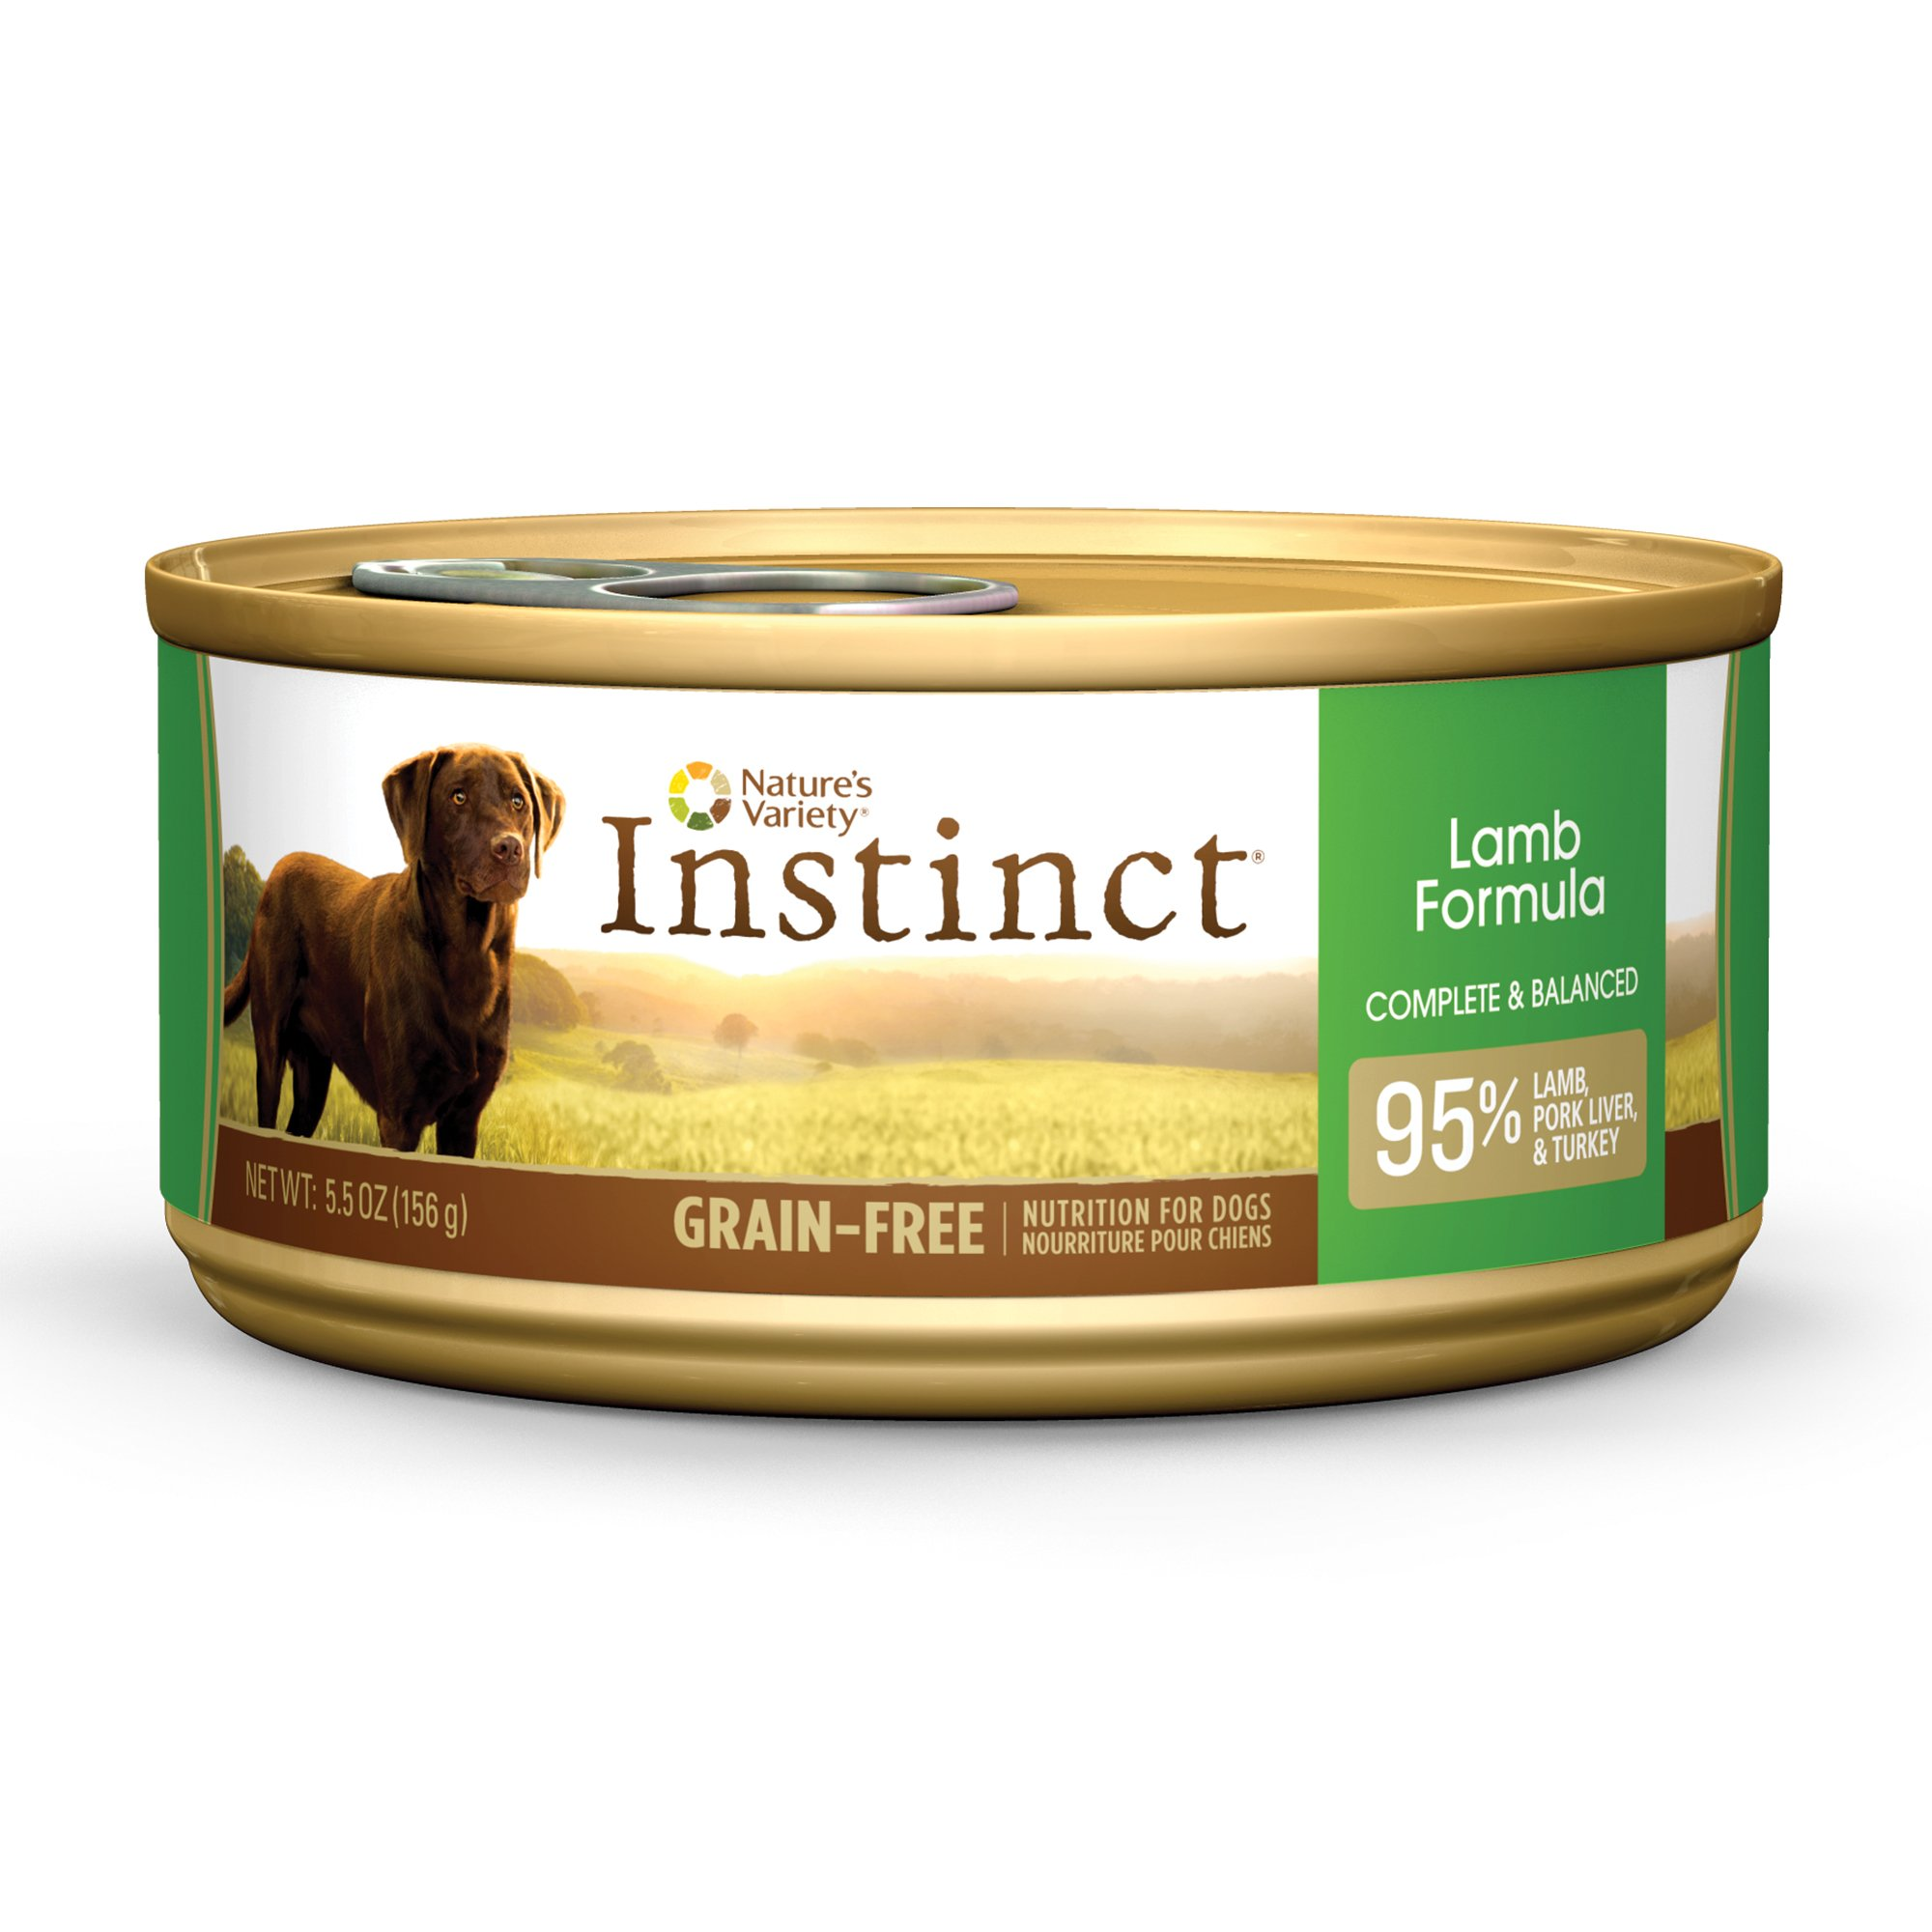 Nature's Variety Instinct Grain-Free Canned Dog Food, Lamb